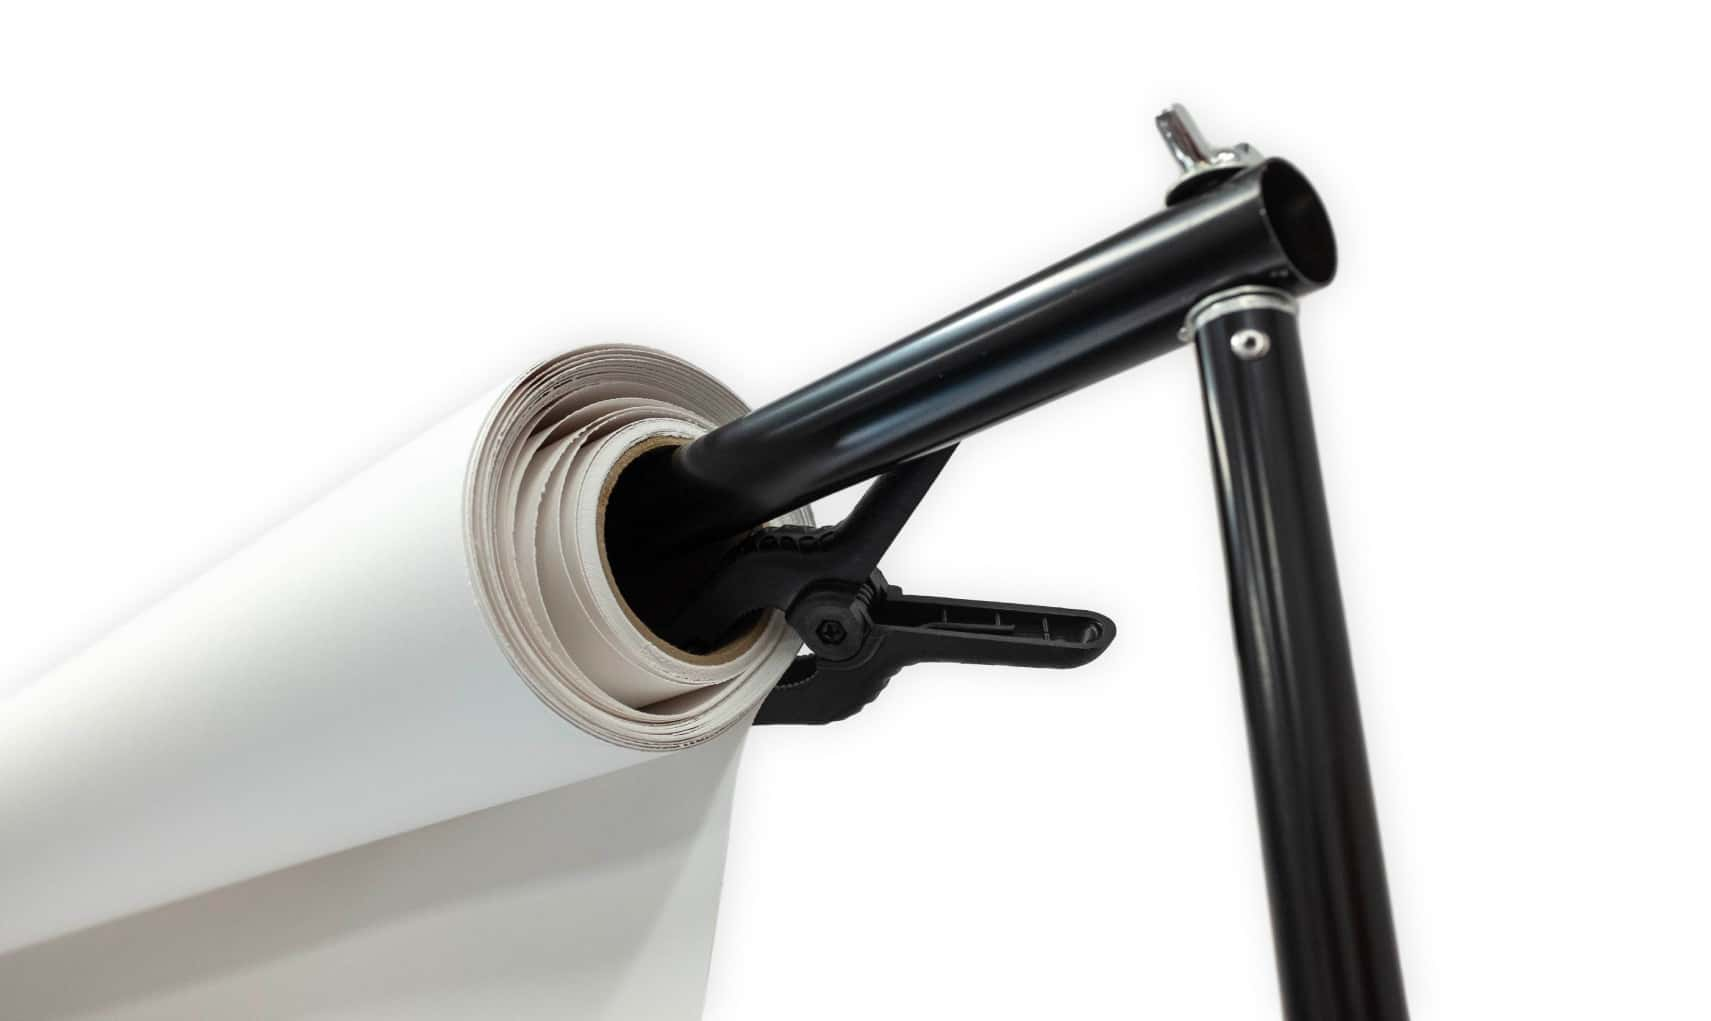 paper roll clamped on to a backdrop